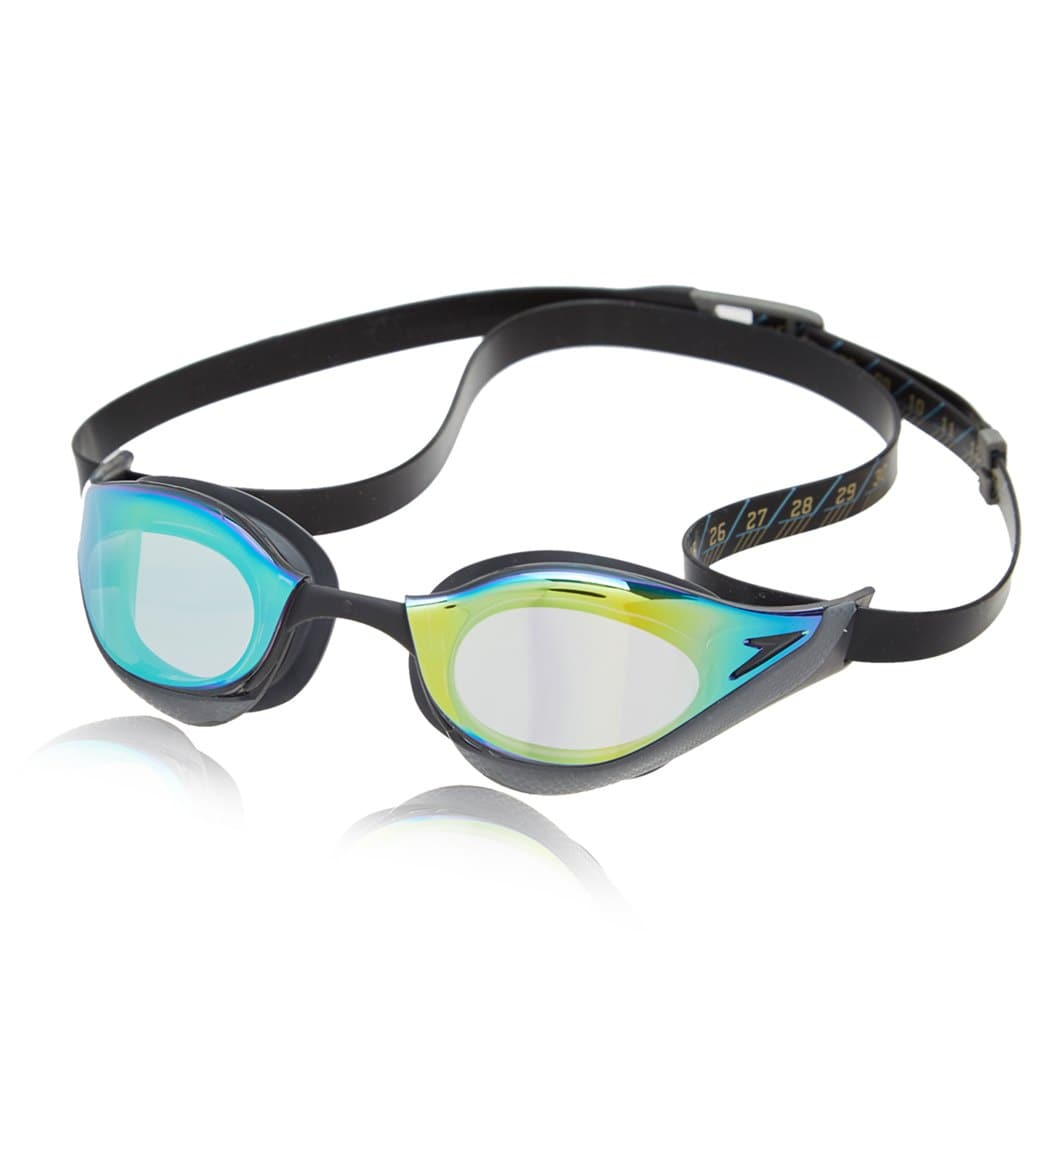 Speedo LZR Pure Focus swimming goggles